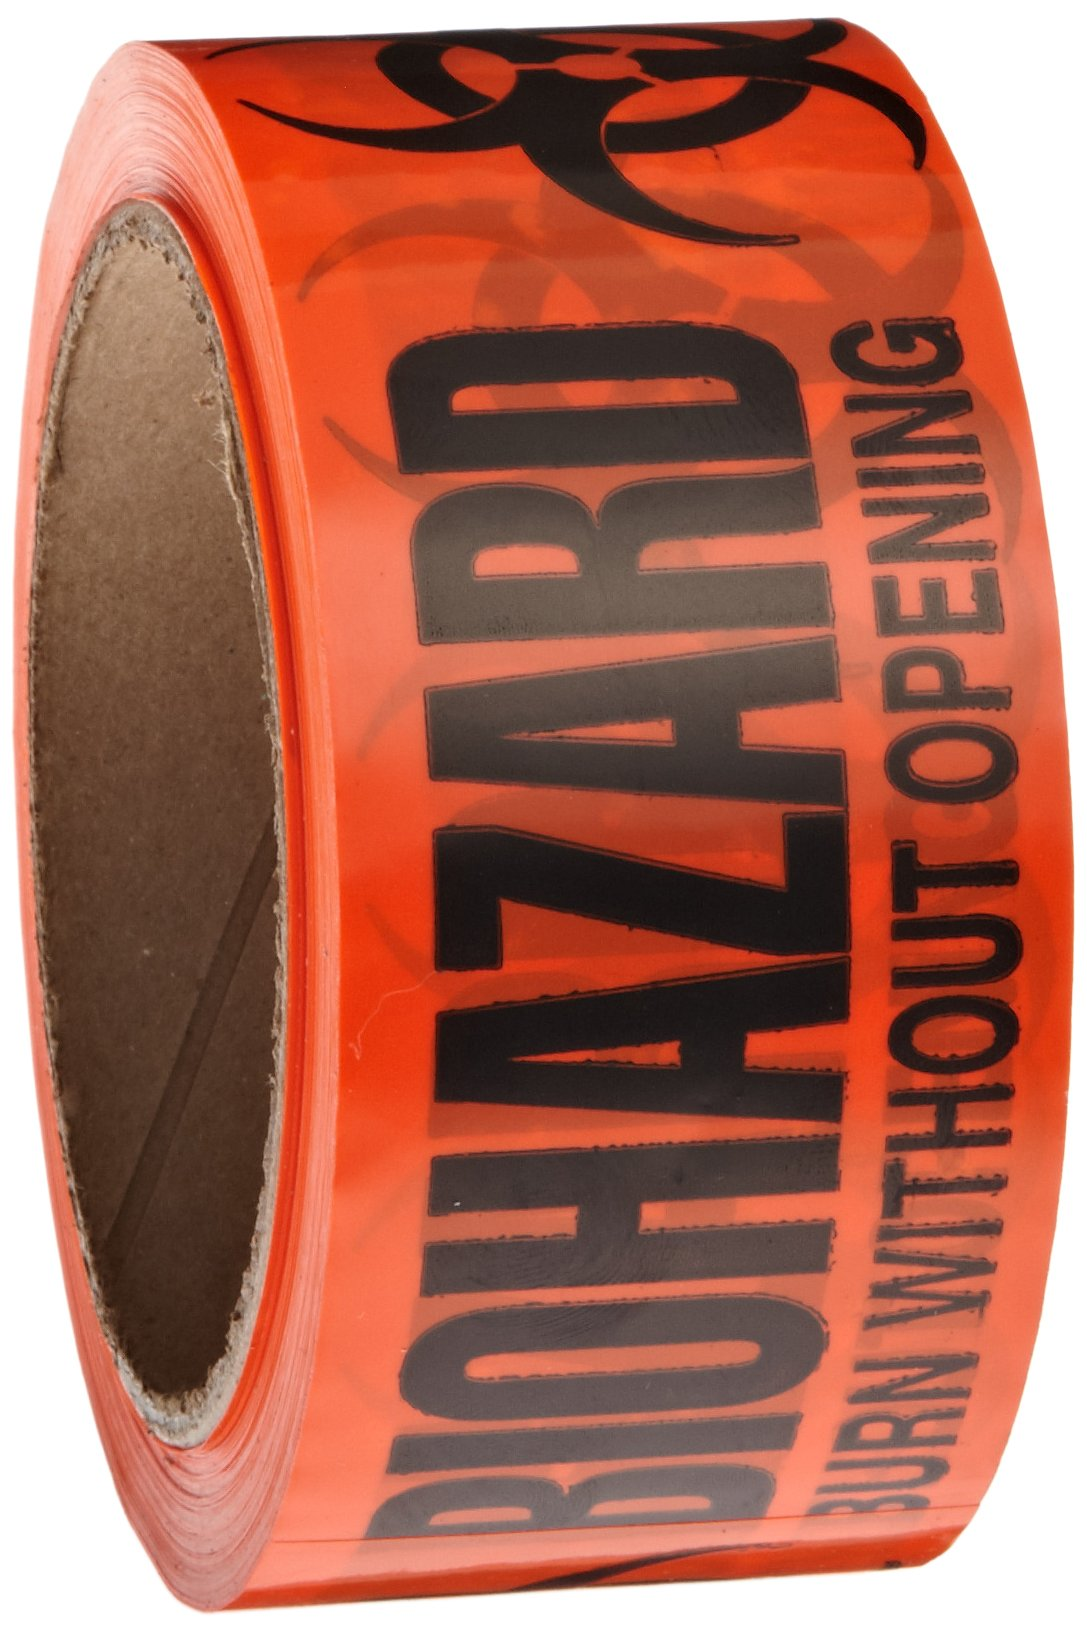 Roll Products 142-0007 PVC Film Biohazard Warning Tape with Black Imprint, Legend ''Biohazard - Burn Without Opening'' (with Logo), 55 yd. Length x 2'' Width, 3'' Diameter Core Roll, for Identifying and Marking, Fluorescent Red/Orange